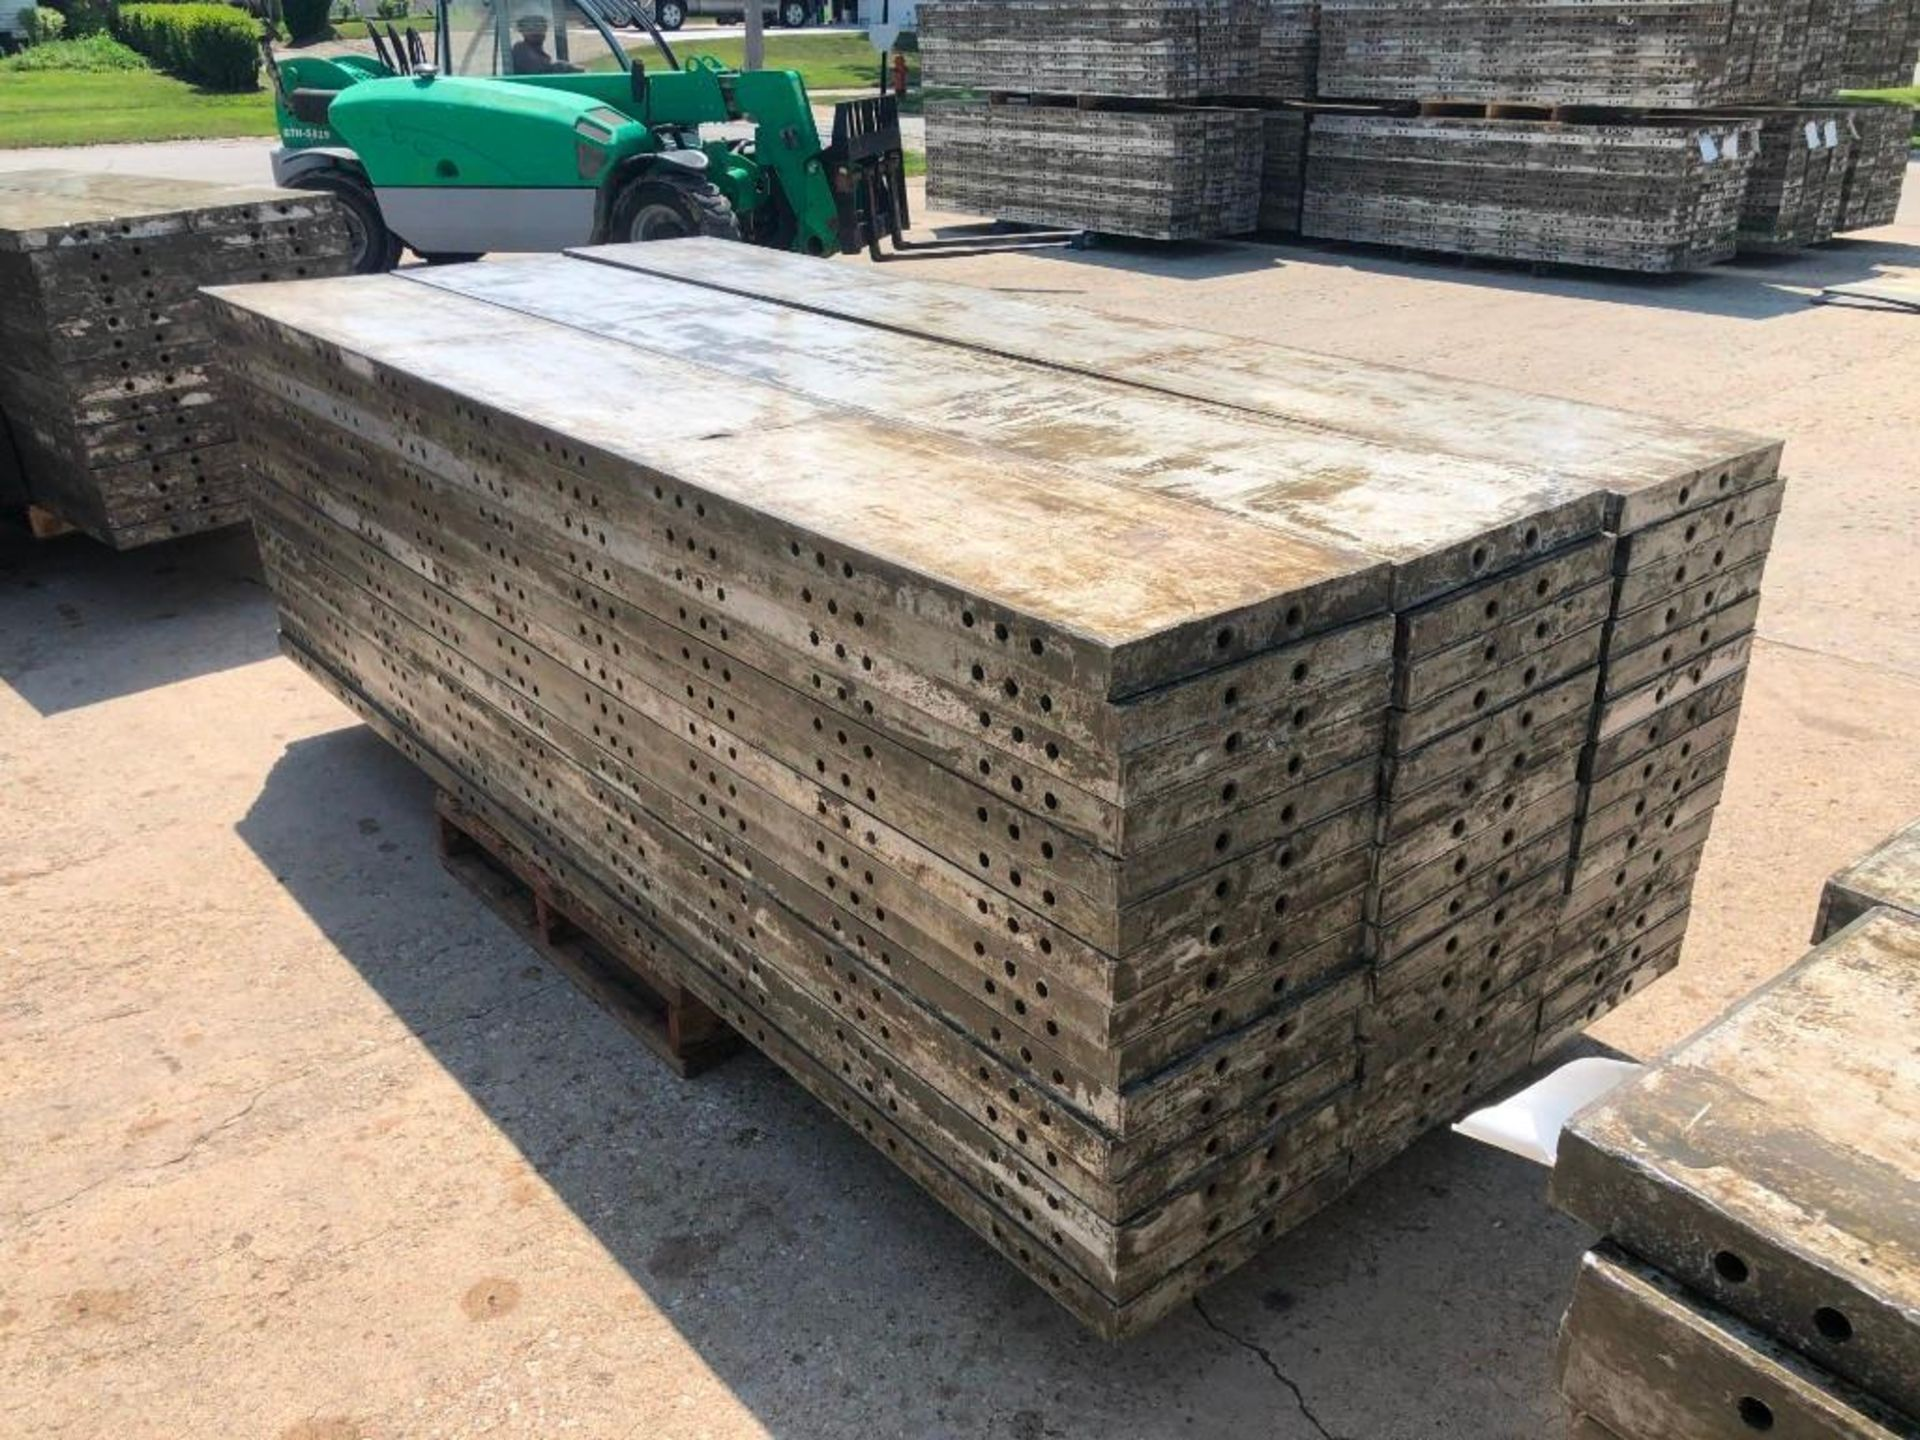 """Lot 157 - (15) 16"""" x 9' Wall-Ties Aluminum Concrete Forms, CAP, Smooth 6-12 Hole Pattern. Located at 301 E"""